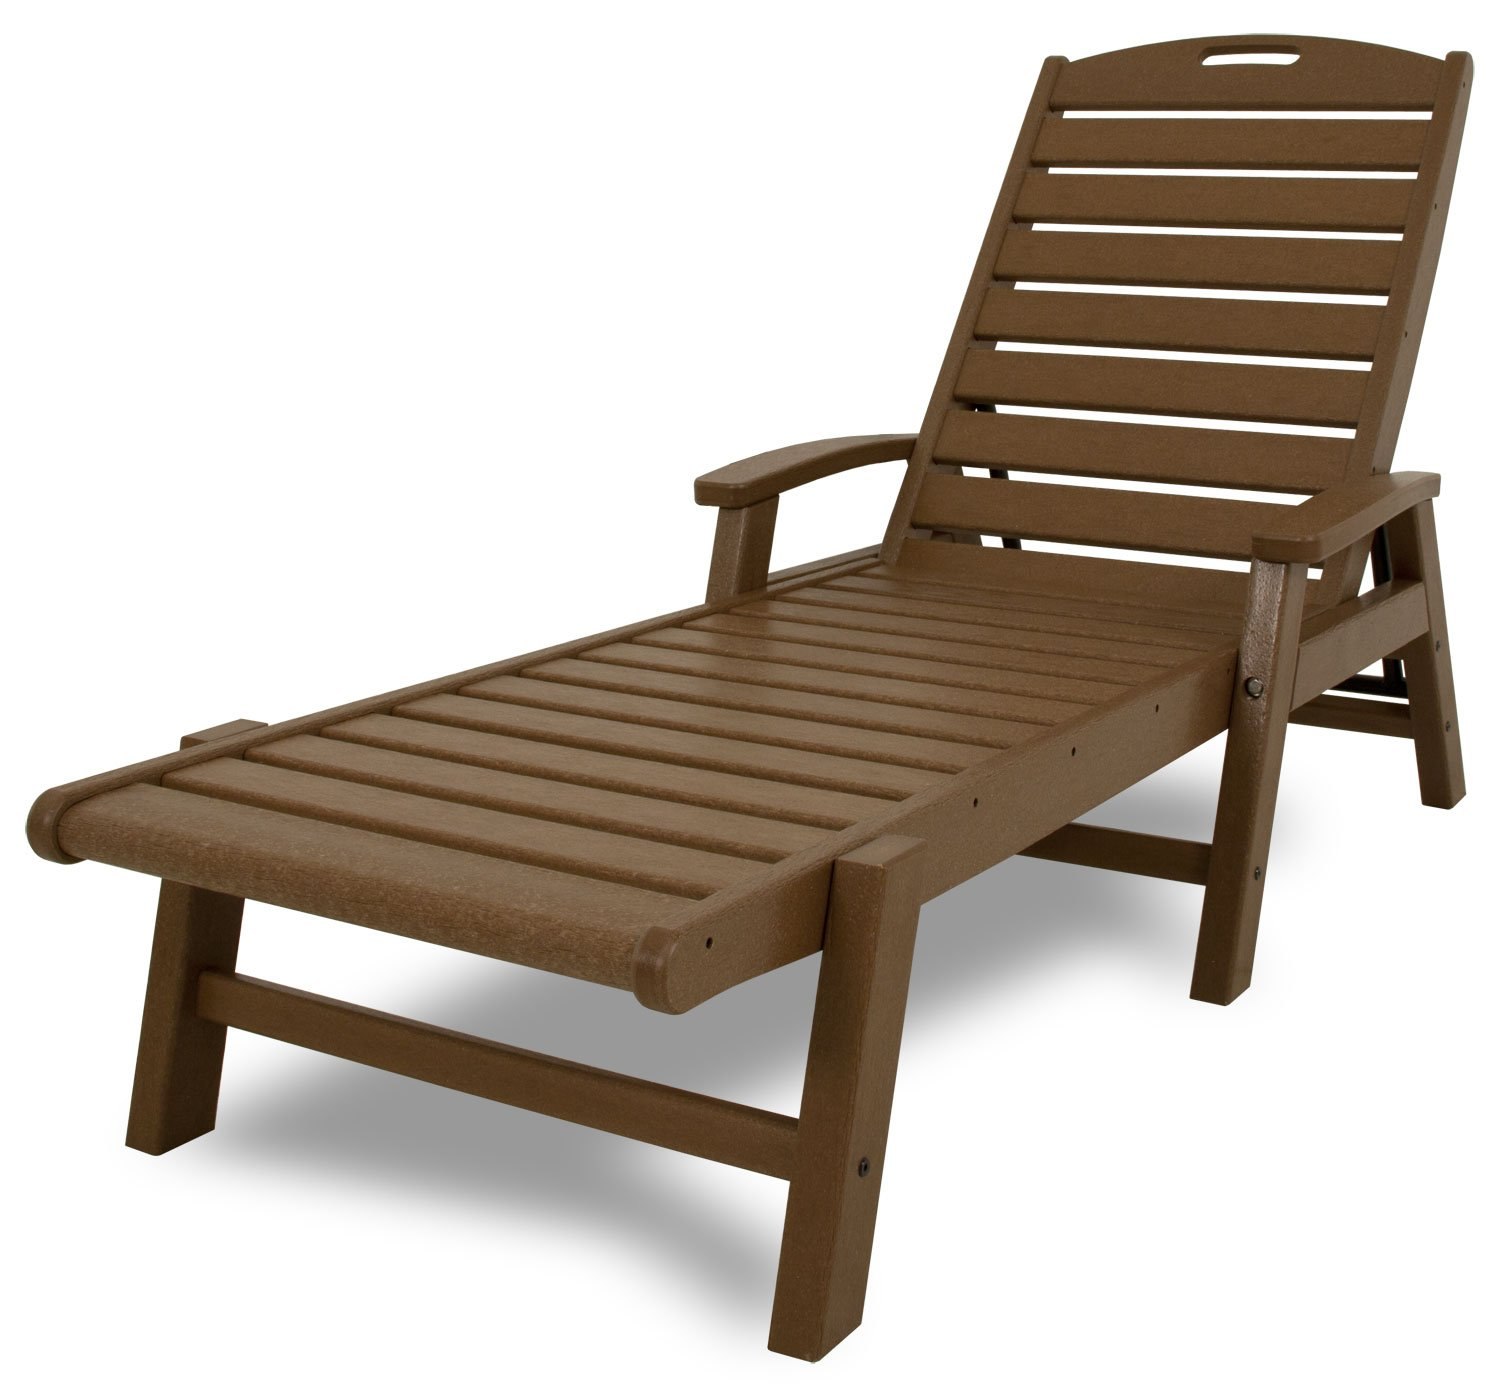 Amazon.com : Trex Outdoor Furniture Yacht Club Stackable Chaise Lounger  With Arms, Tree House : Patio Lounge Chairs : Patio, Lawn U0026 Garden